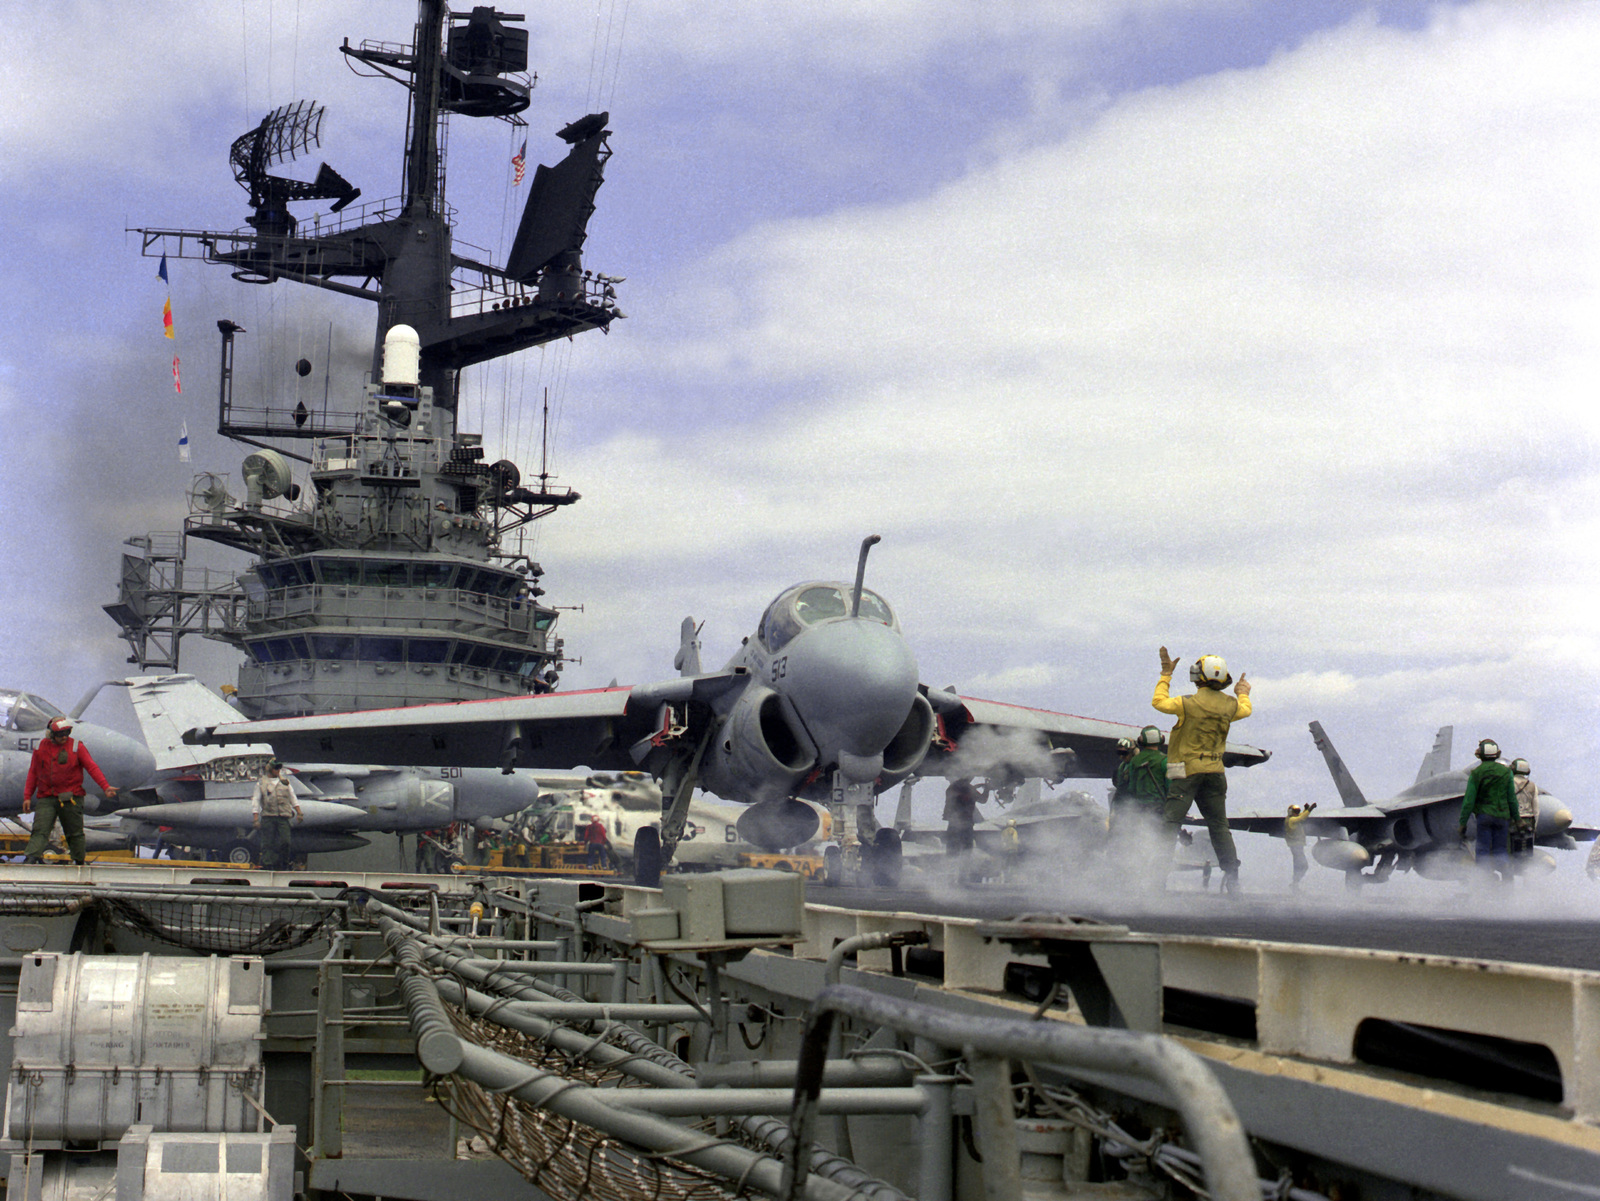 A flight deck crew member signals to the pilot of an A-6E Intruder aircraft as the plane is readied for launch from the aircraft carrier USS CORAL SEA (CV-43)